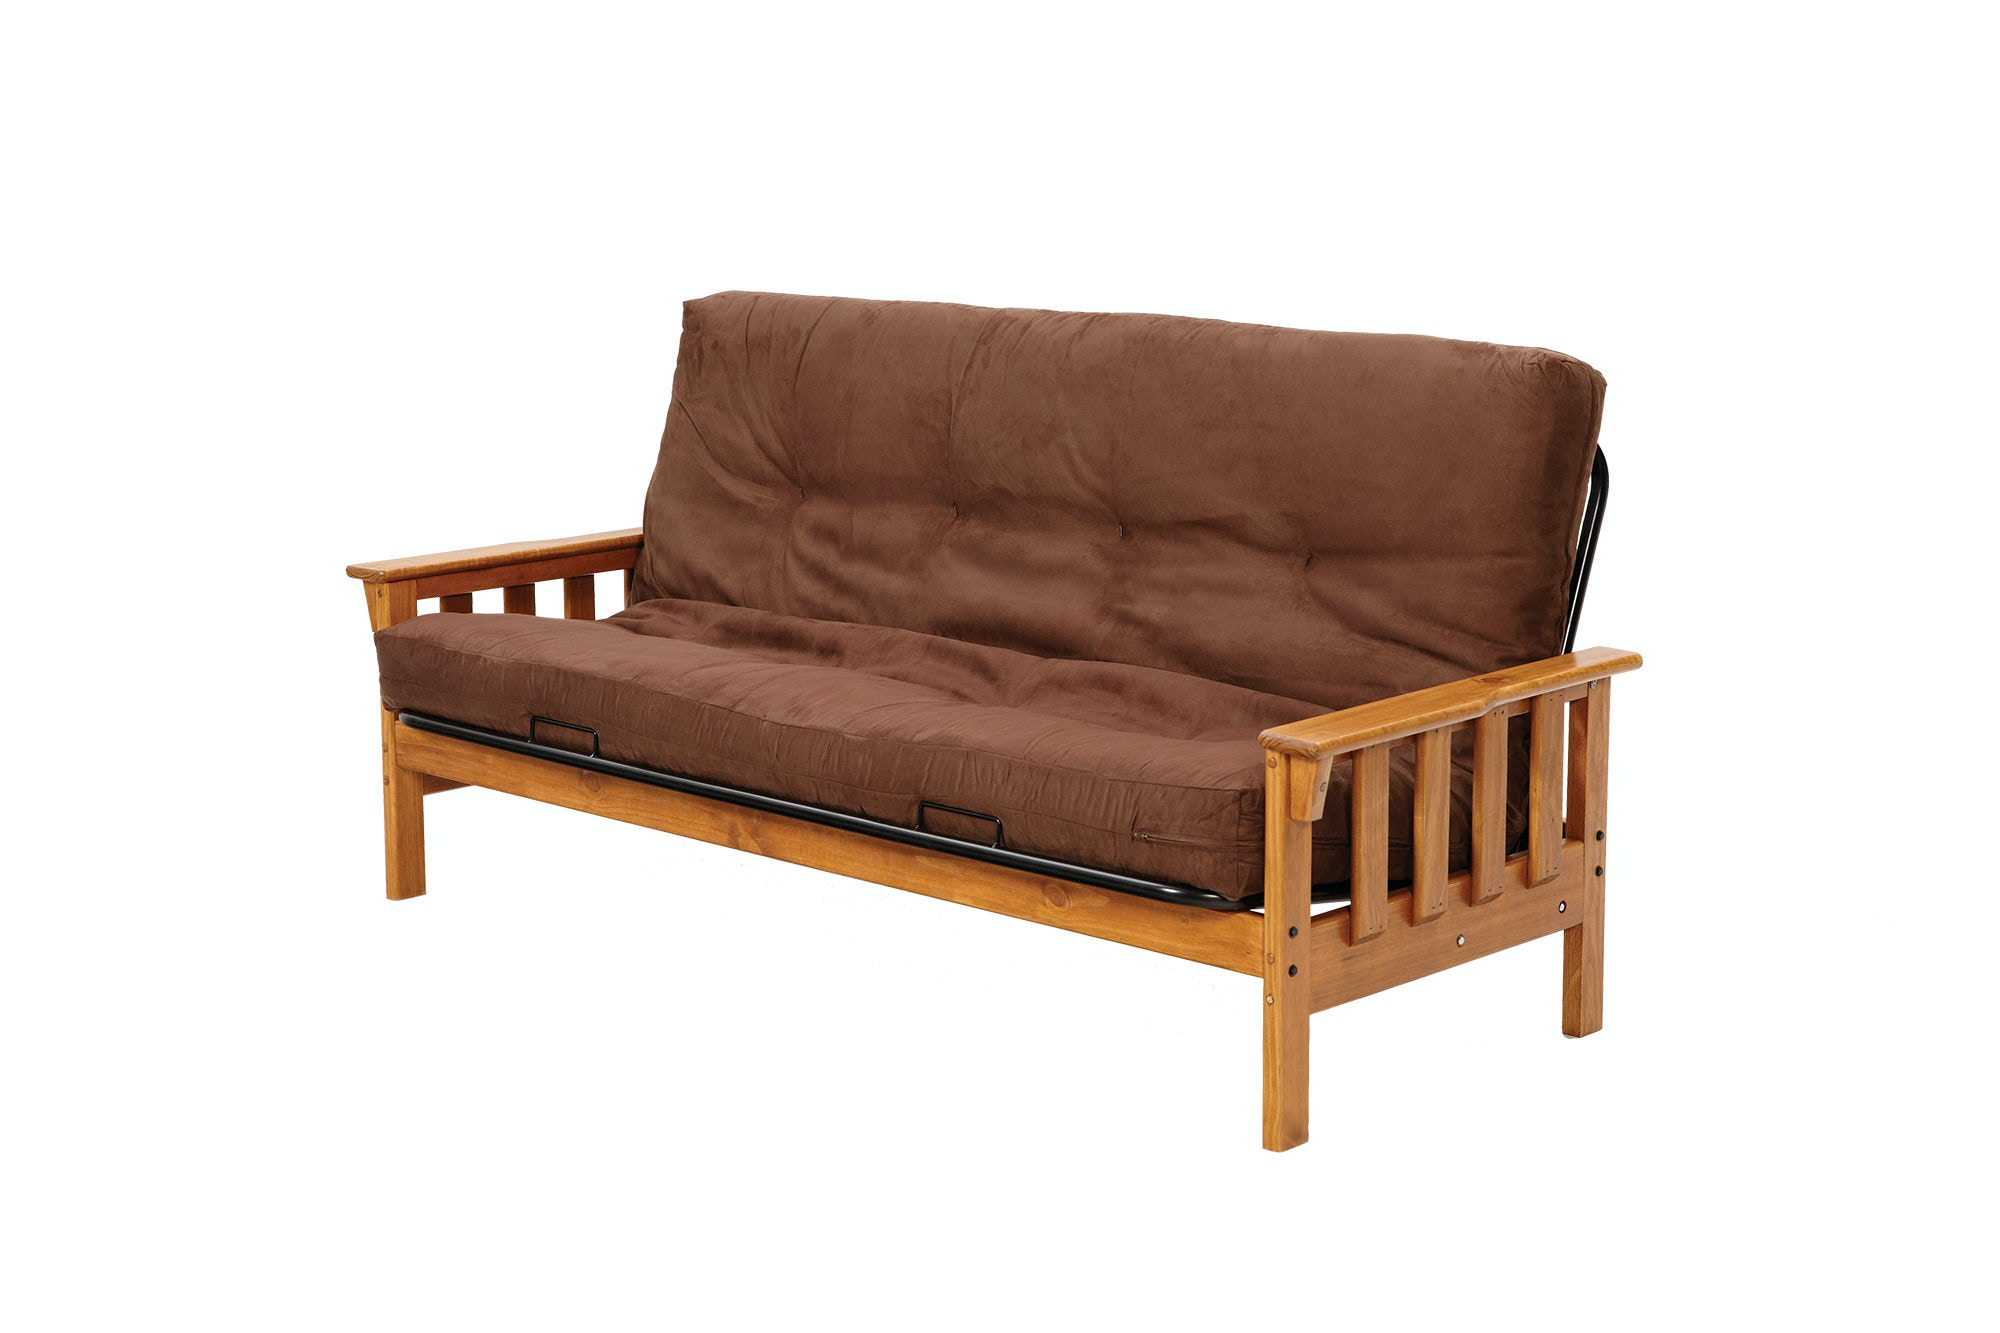 Craftsman style futon sofa bed thesofa for Craftsman bed